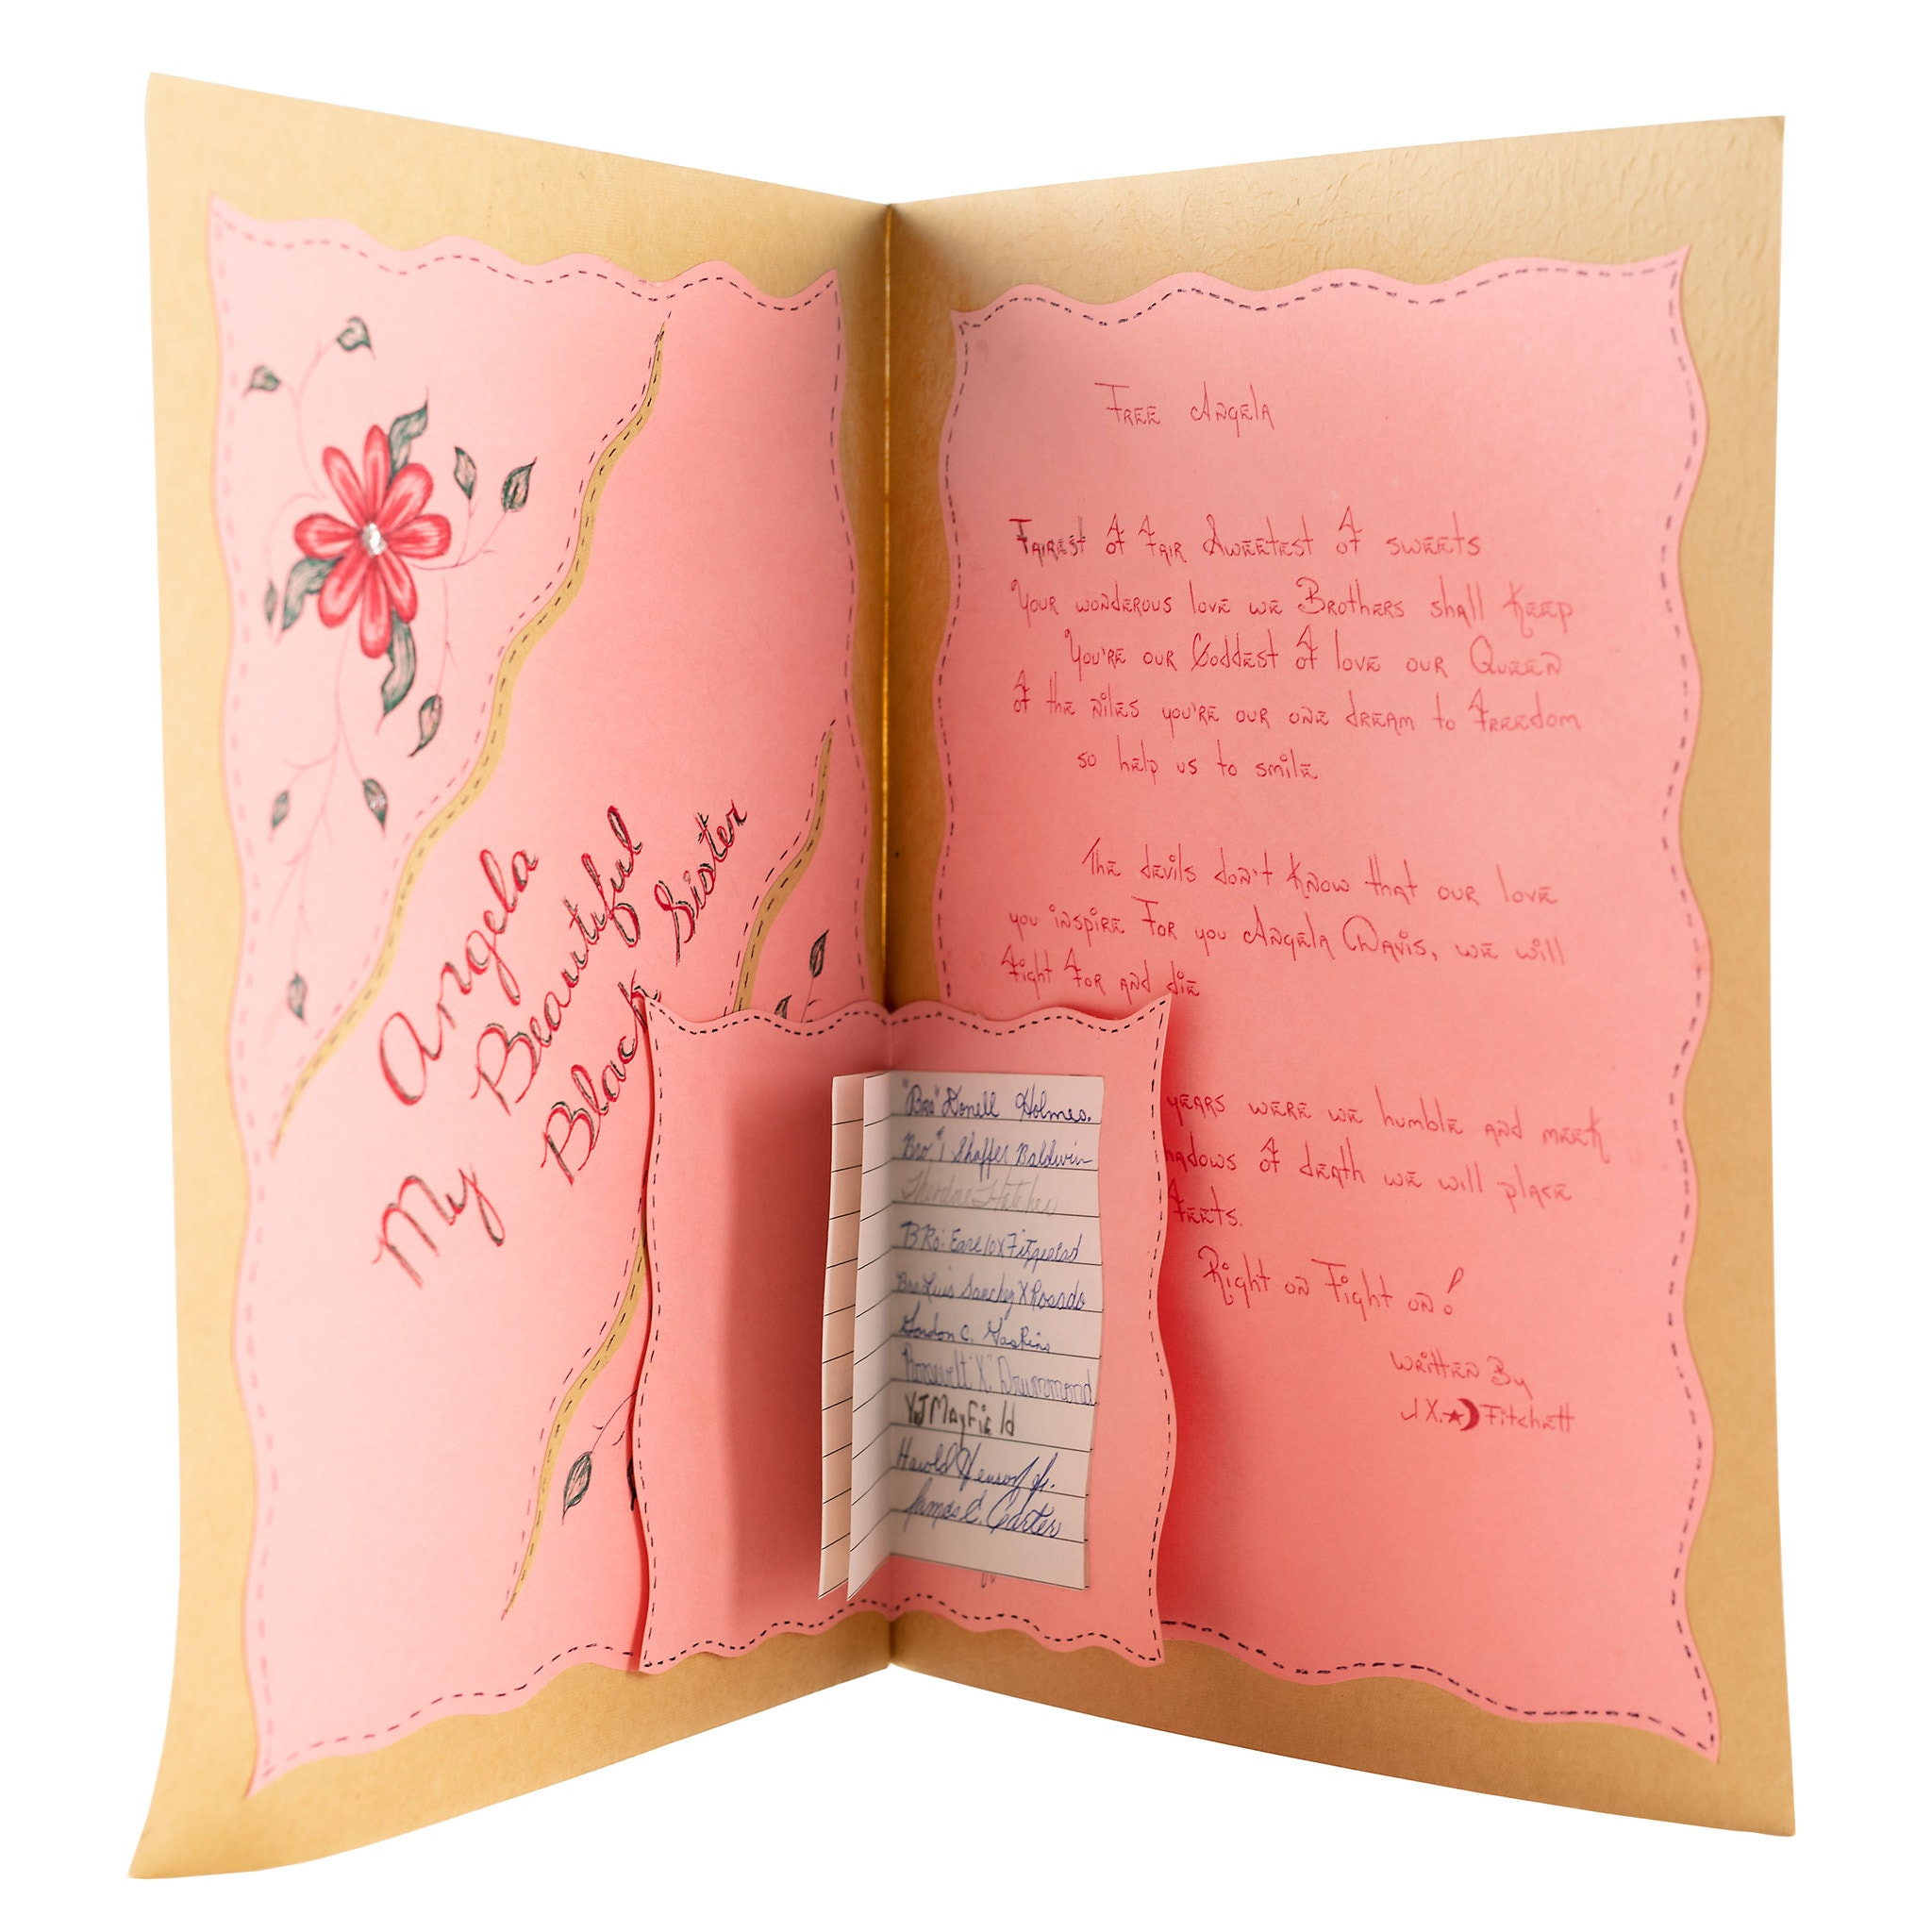 Interior booklet lined with pink paper with handwritten text.